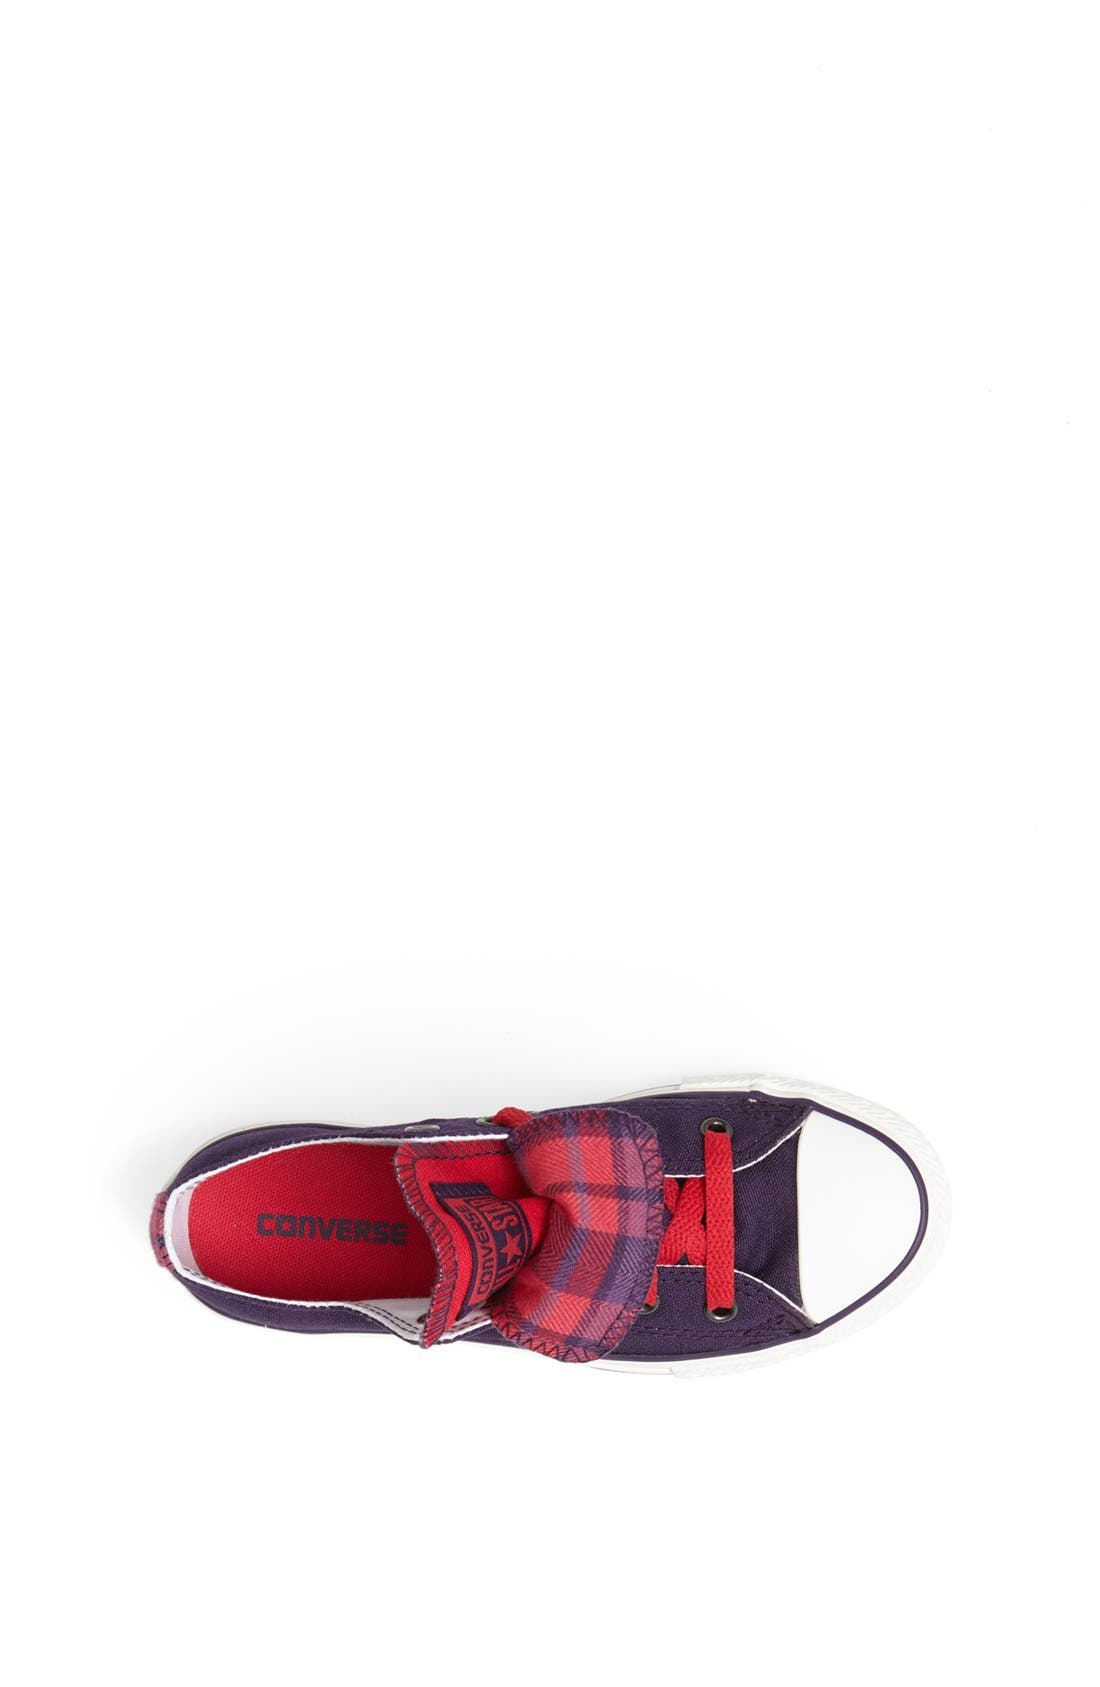 Alternate Image 3  - Converse Chuck Taylor® All Star® Double Tongue Sneaker (Toddler, Little Kid & Big Kid)